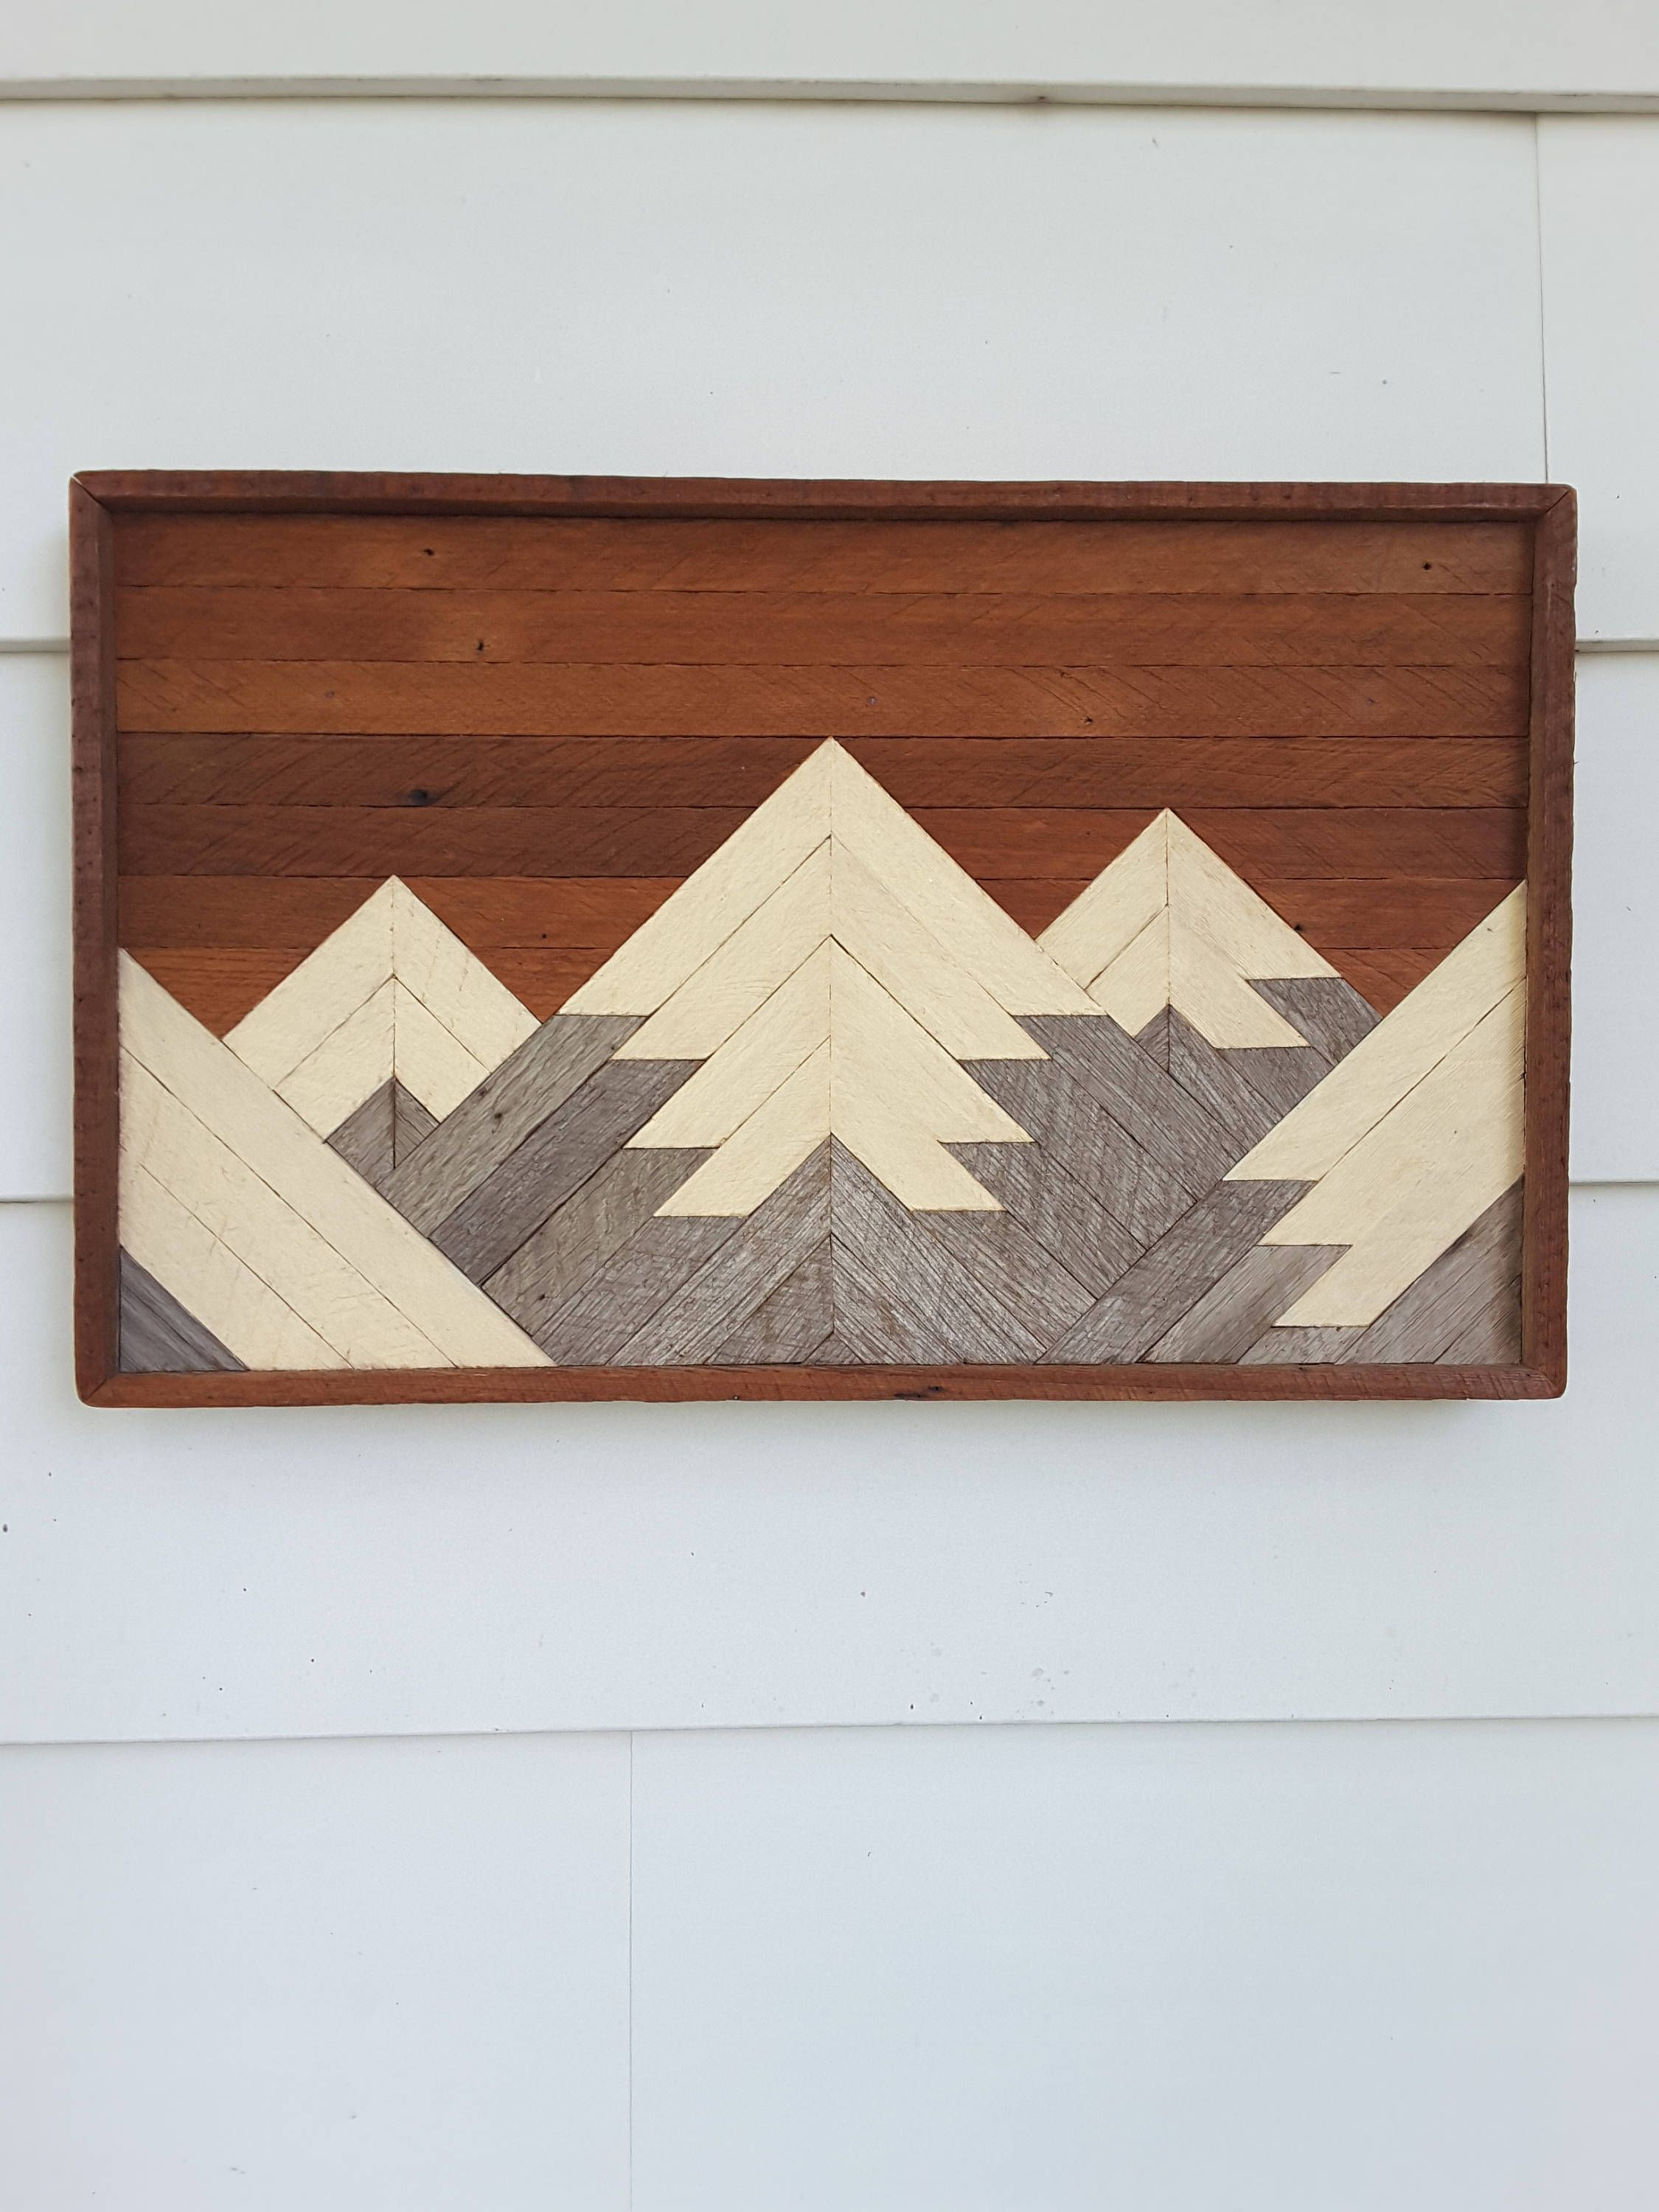 Rustic Mountain Tops Small Mountain Range Reclaimed Wood Wall Art